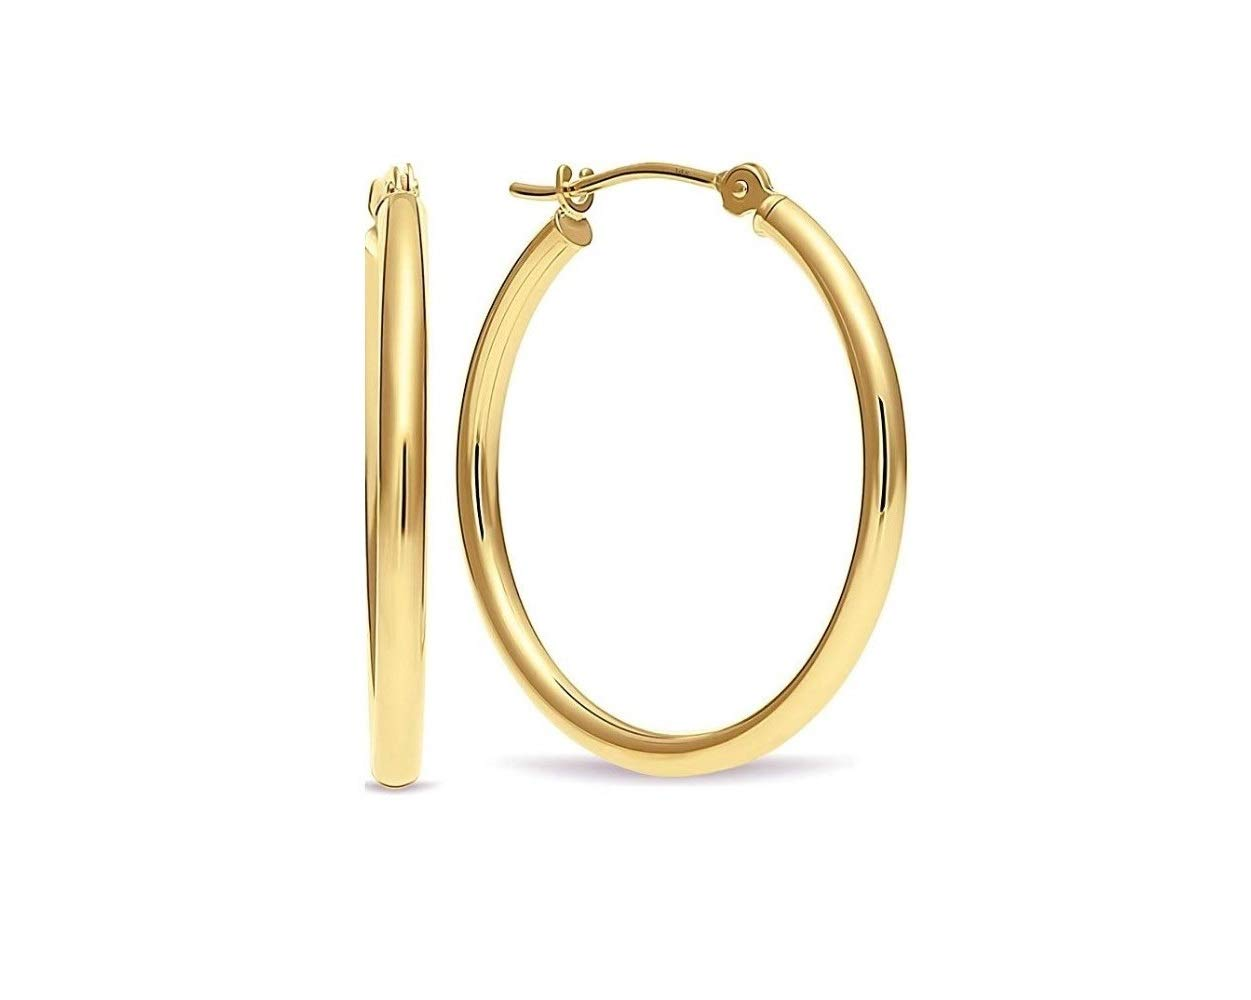 14k Genuine Yellow Gold 1.5 INCH Round Hoop Earrings (40MM) by Parade of Jewels